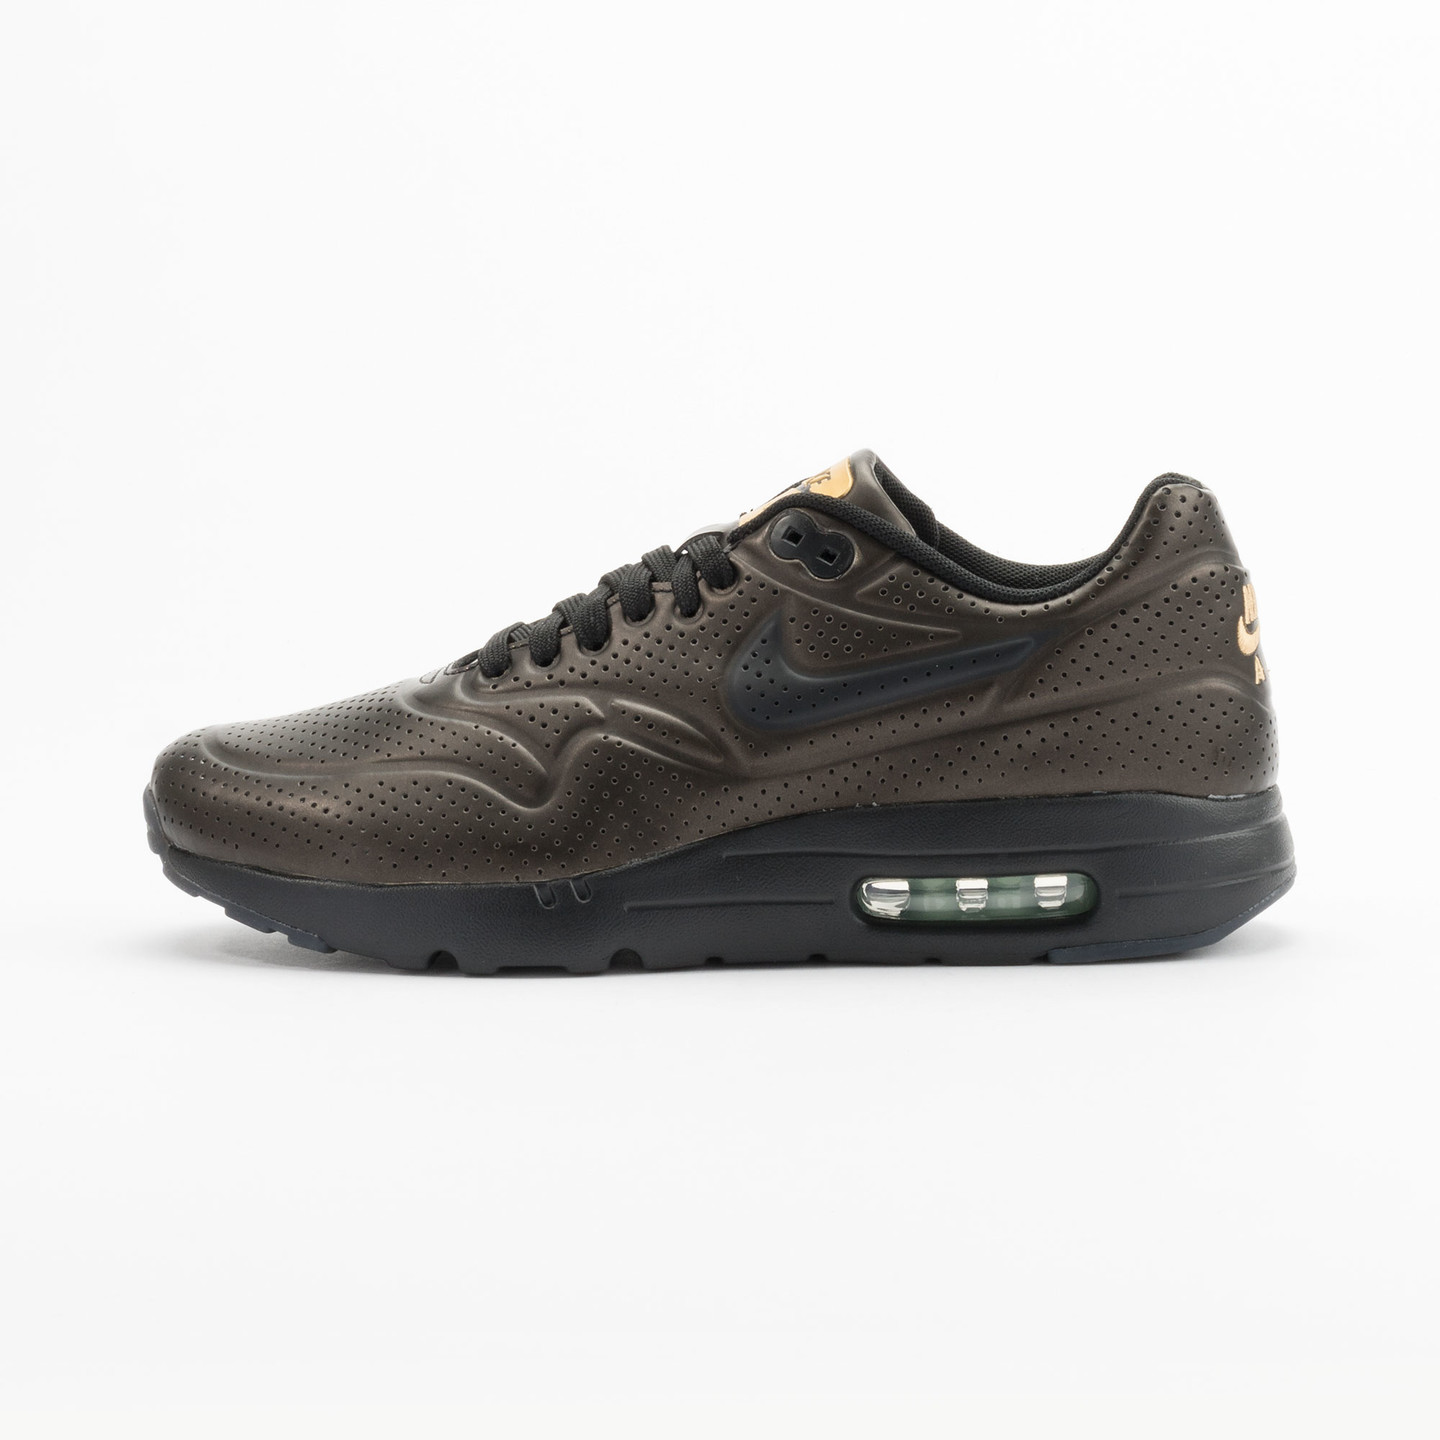 Nike Air Max 1 Ultra Moire Metallic Gold / Black 705297-700-41